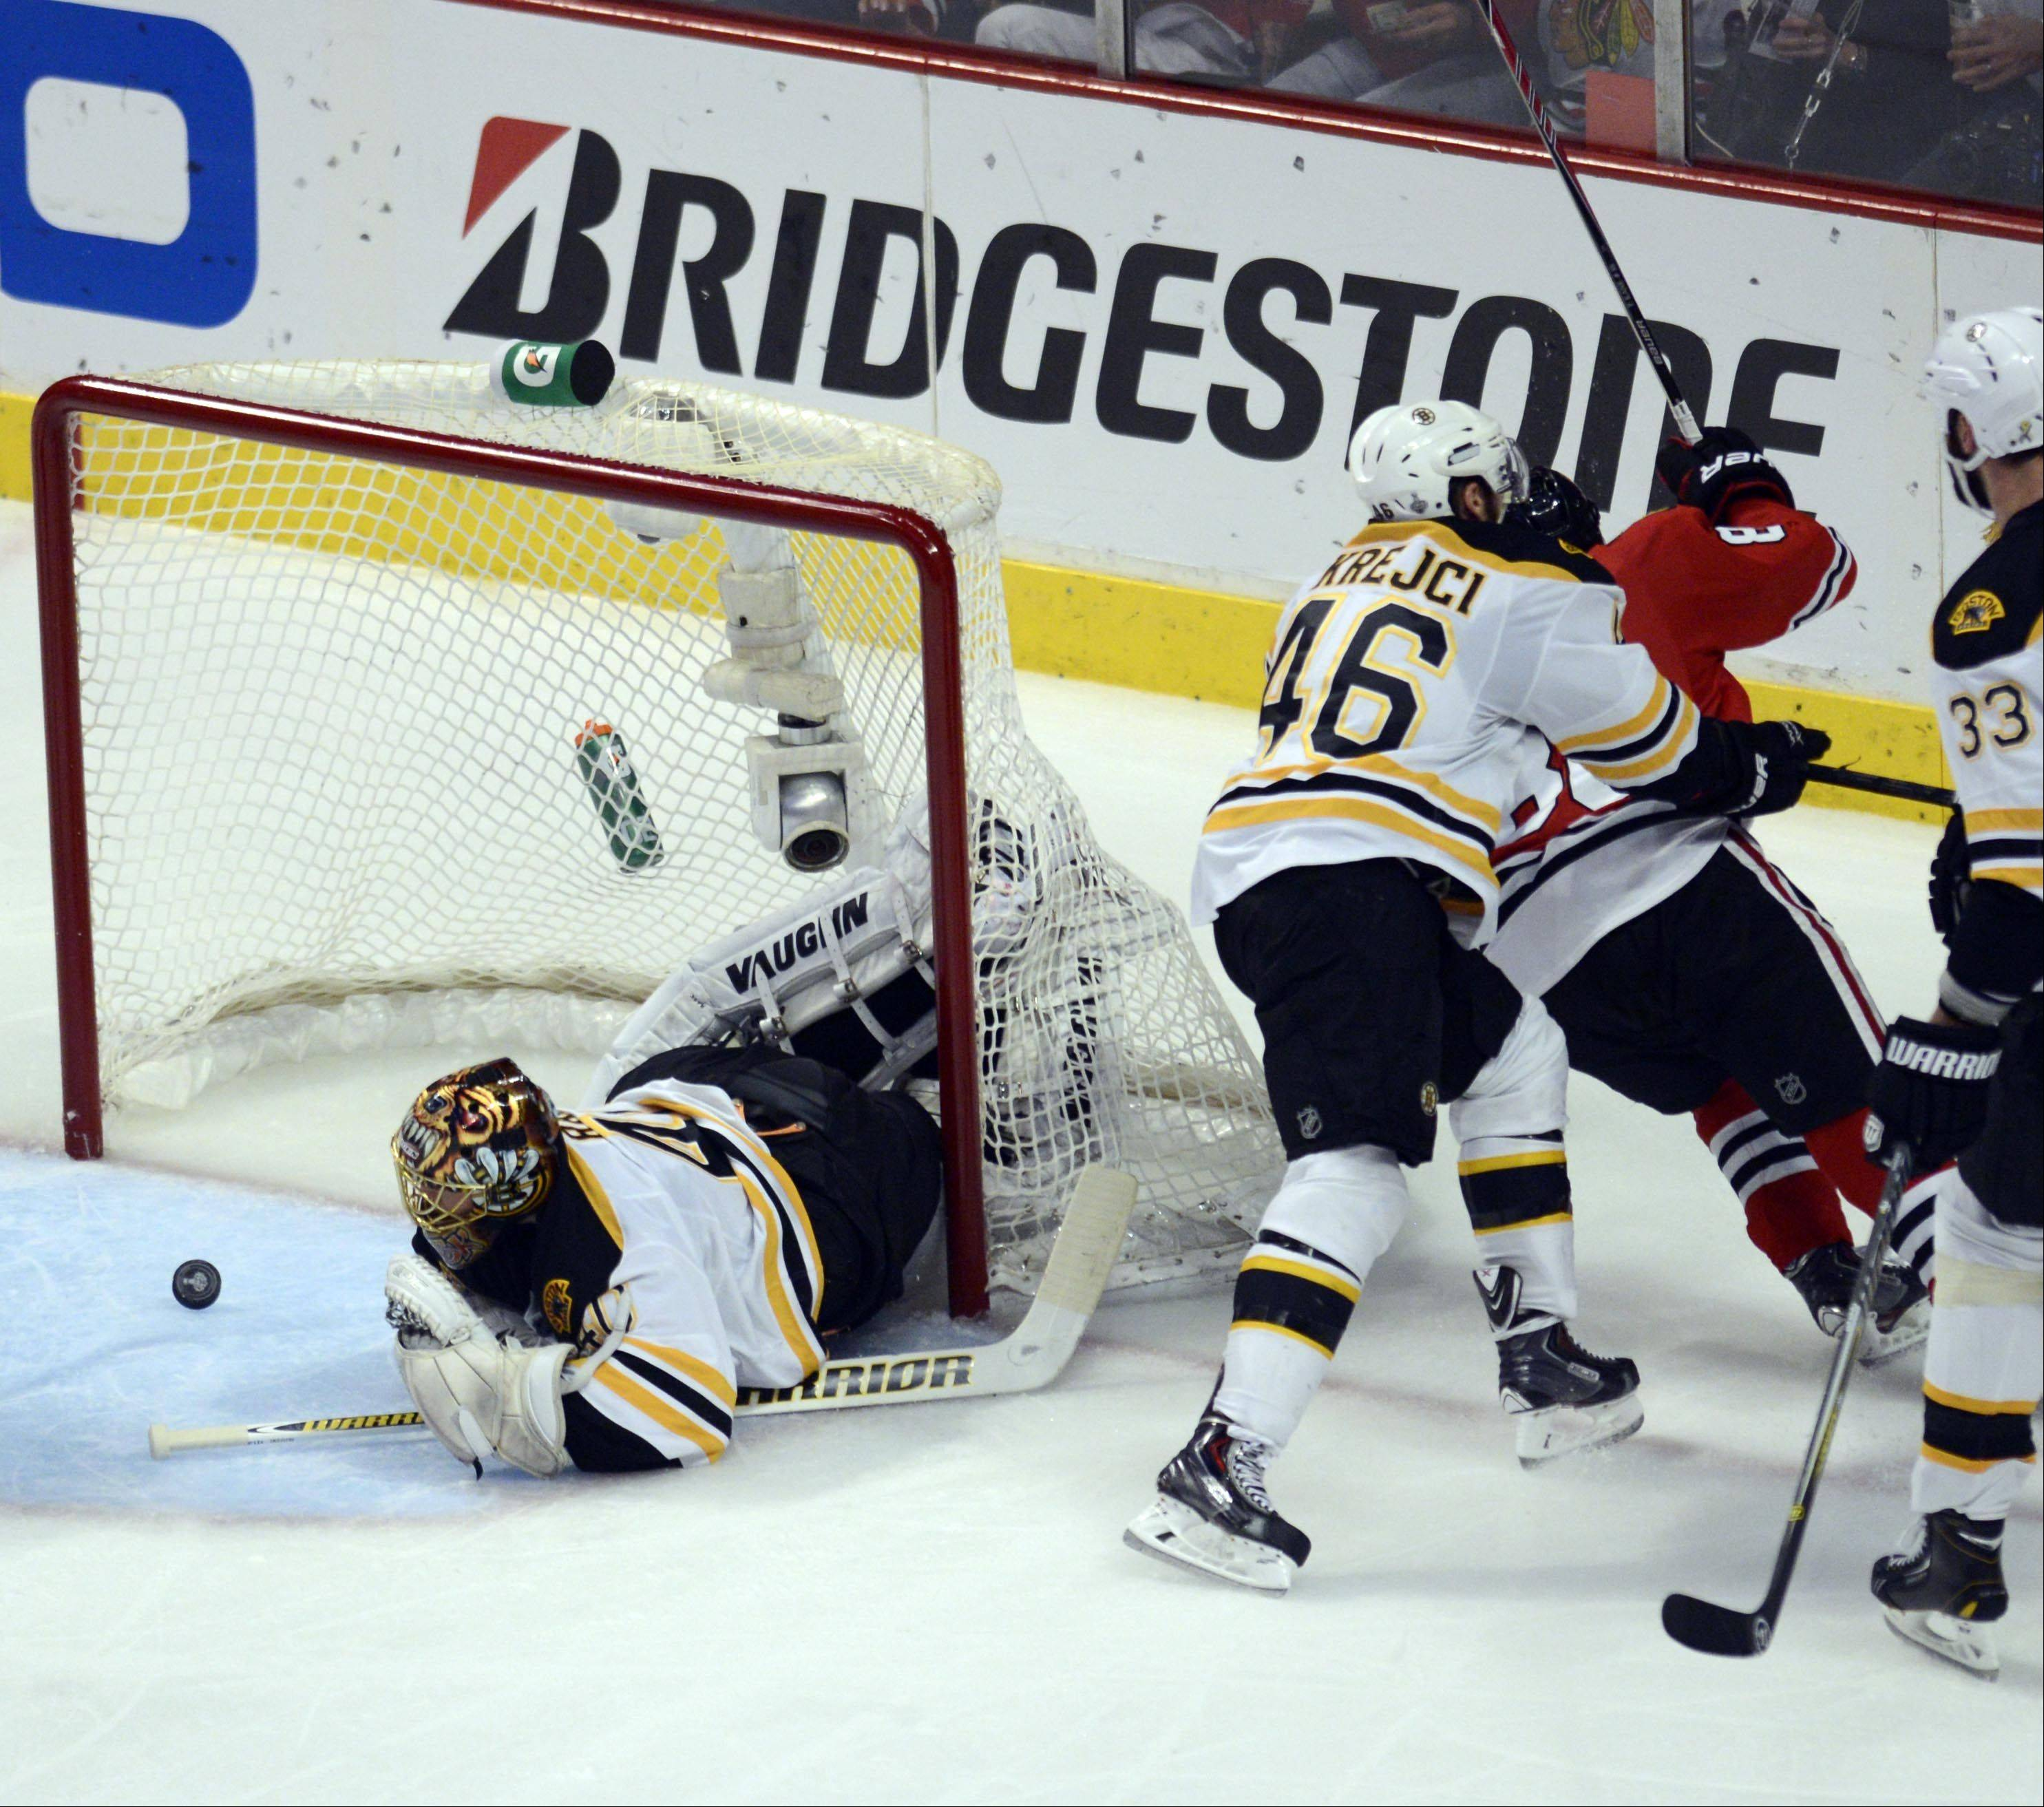 Boston Bruins center David Krejci pushes Chicago Blackhawks right wing Patrick Kane after his second period goal Saturday in Game 5 of the Stanley Cup Finals at the United Center in Chicago.